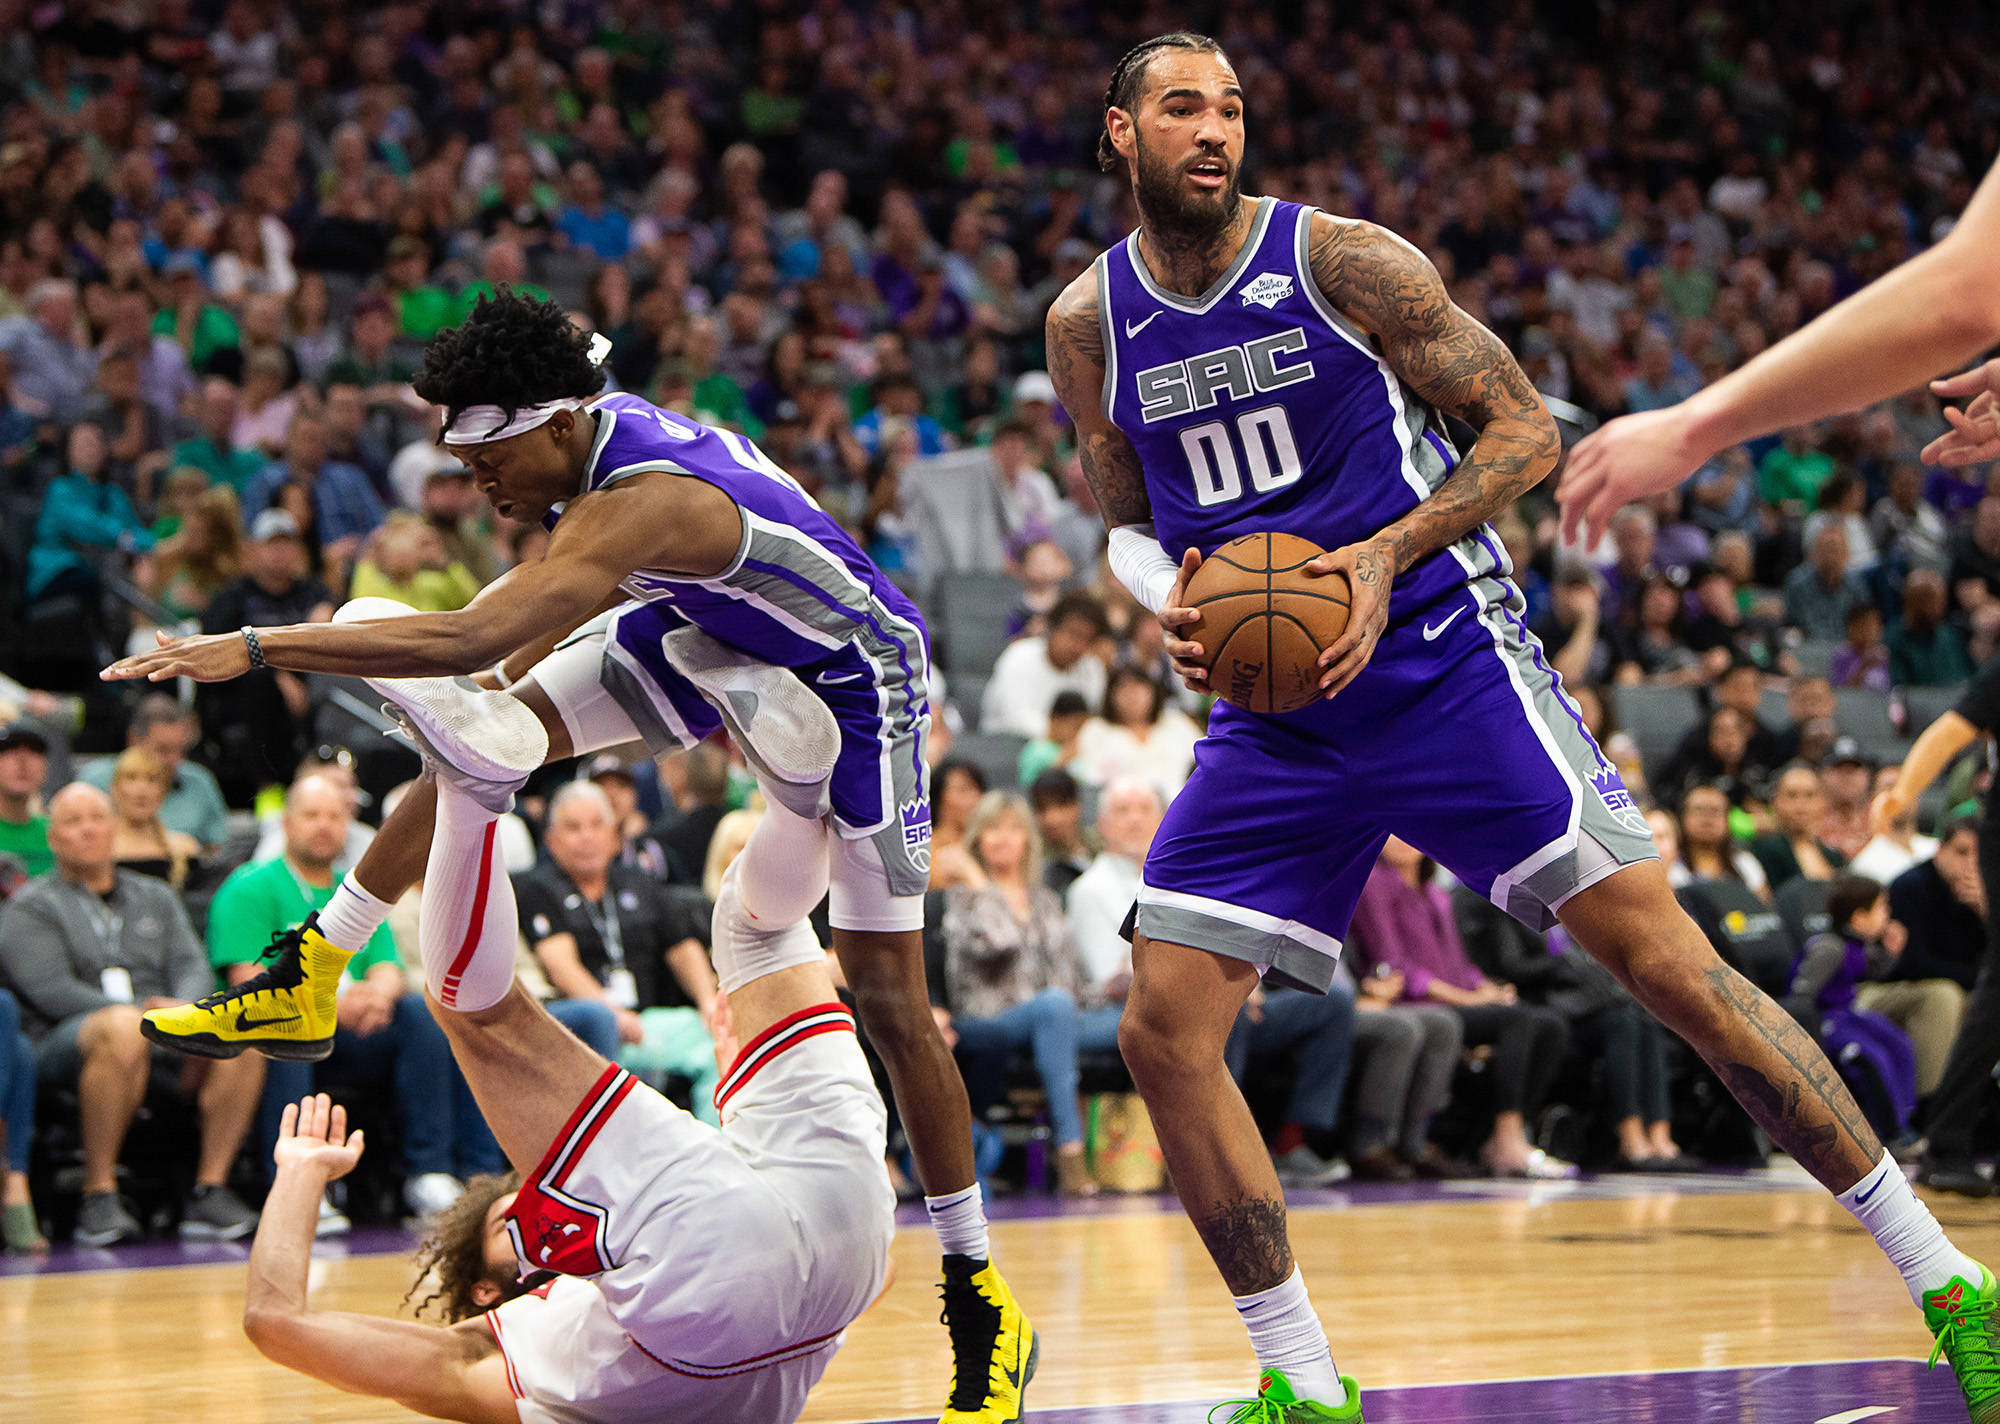 Sacramento Kings center Willie Cauley-Stein (00) grabs the ball from Chicago Bulls center Robin Lopez (42) as Sacramento Kings guard De'Aaron Fox (5) leaps over him on Sunday, March 17, 2019 at Golden 1 Center in Sacramento, Calif. (Paul Kitagaki Jr./Sacramento Bee/TNS)